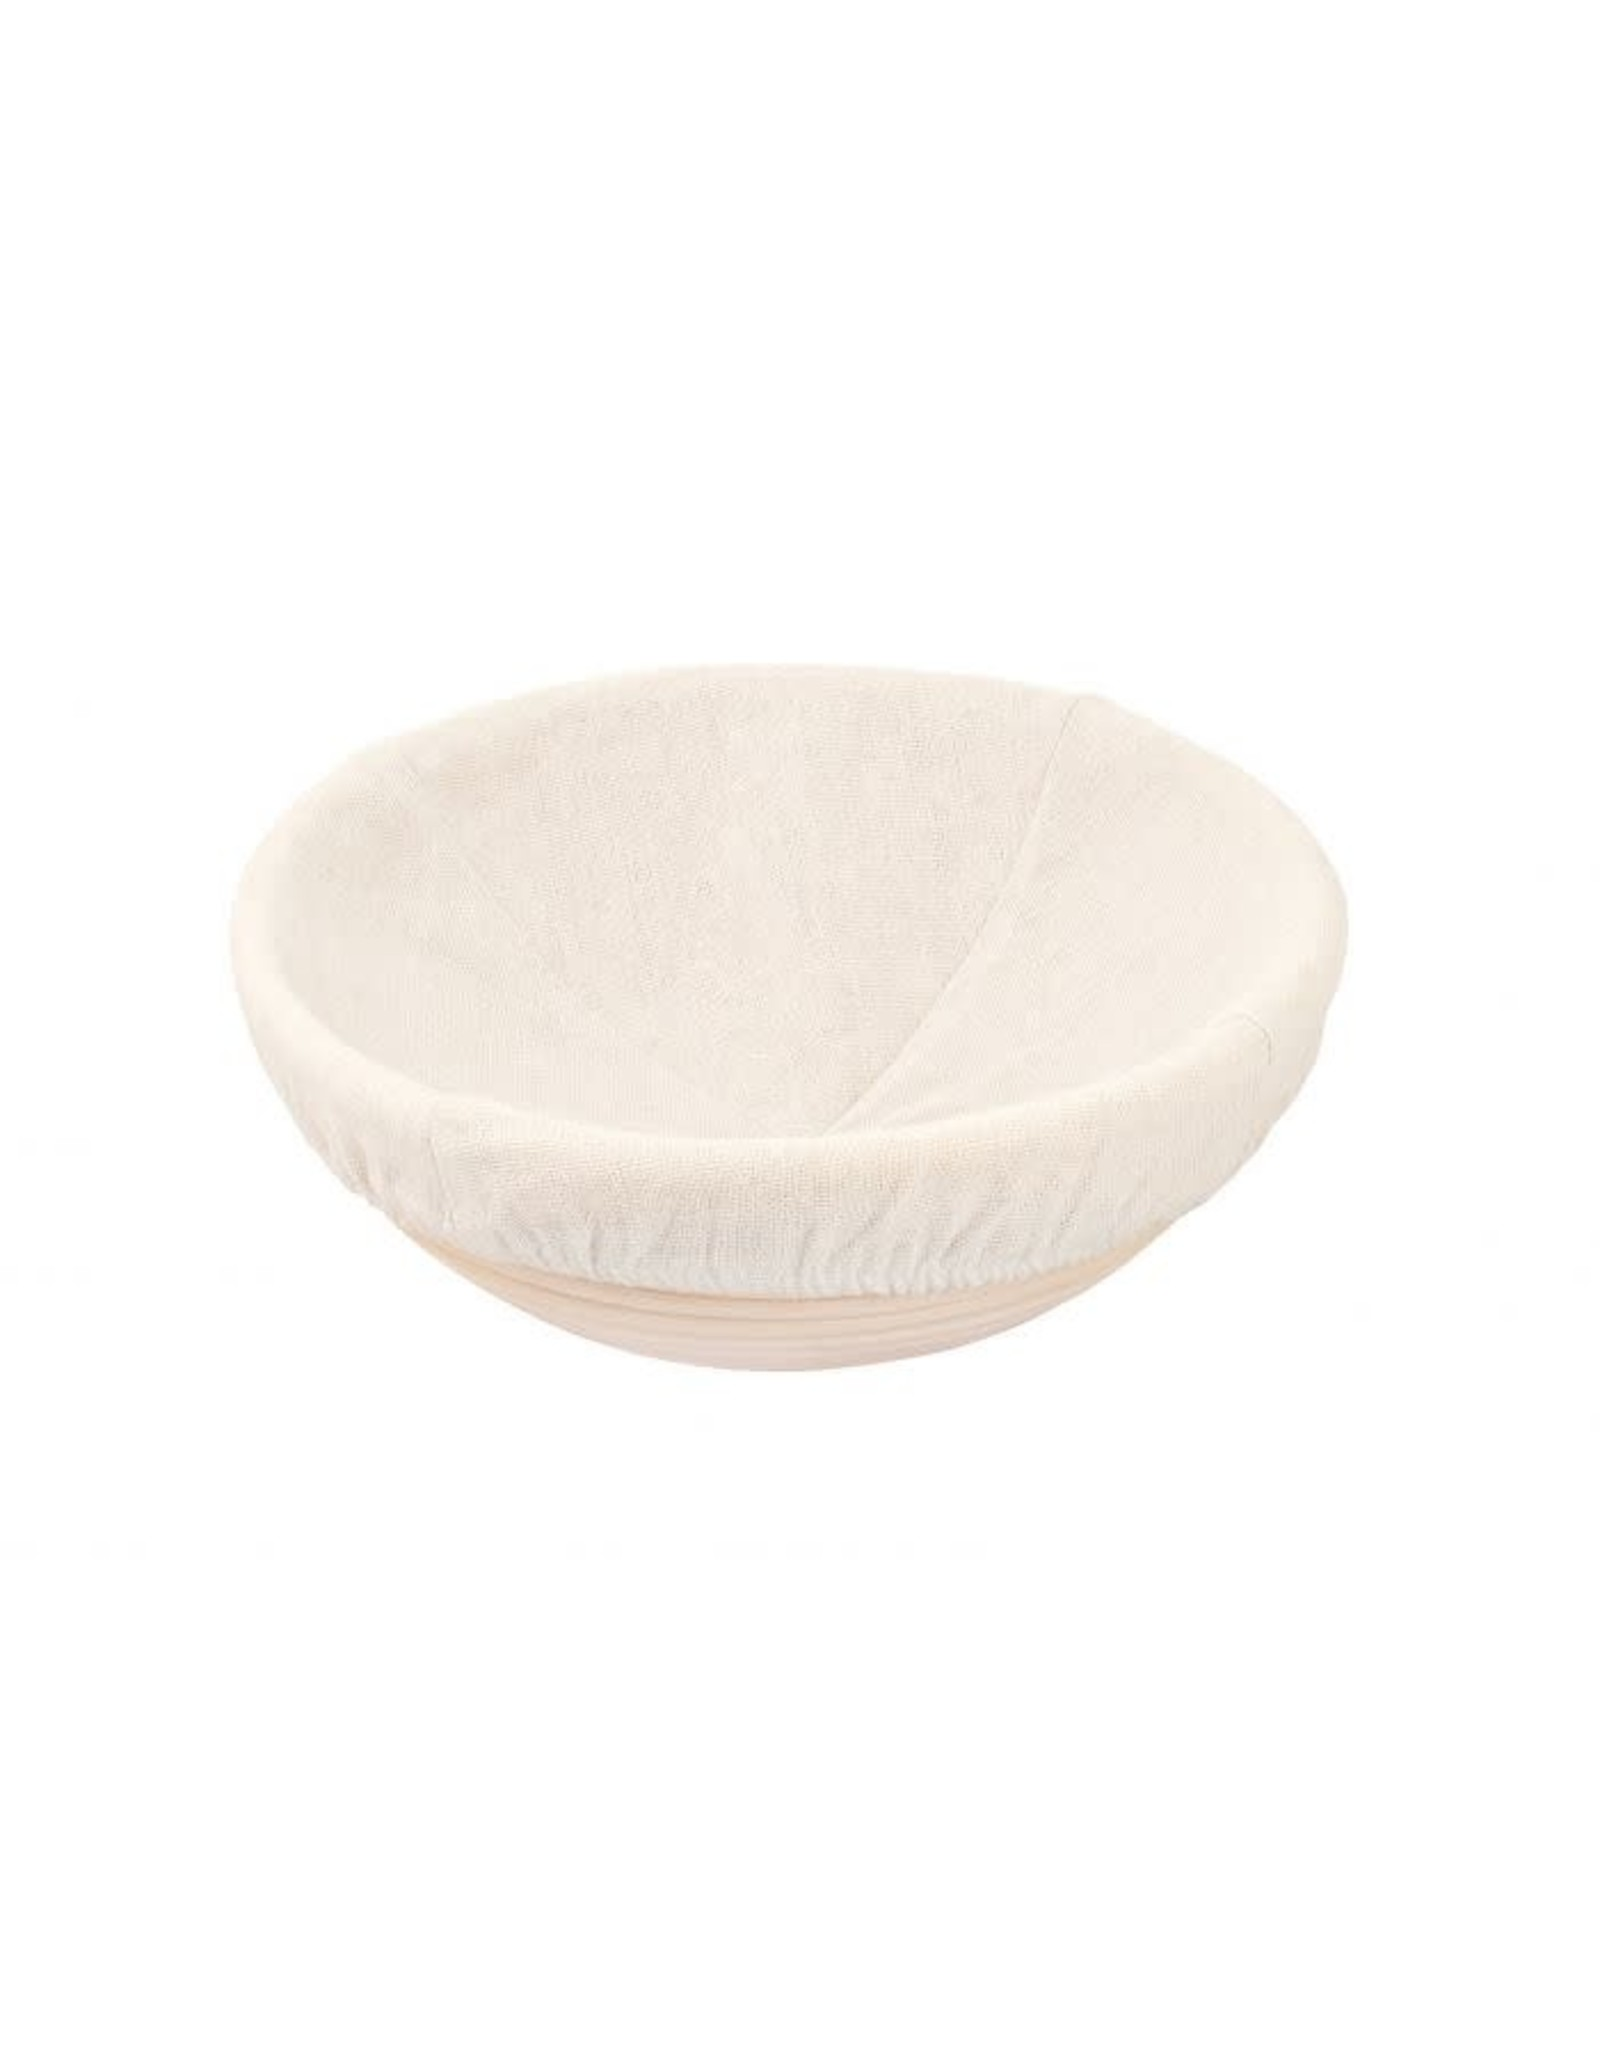 Harold Import Company BANNETON Round Basket 23.5 cm wide with liner